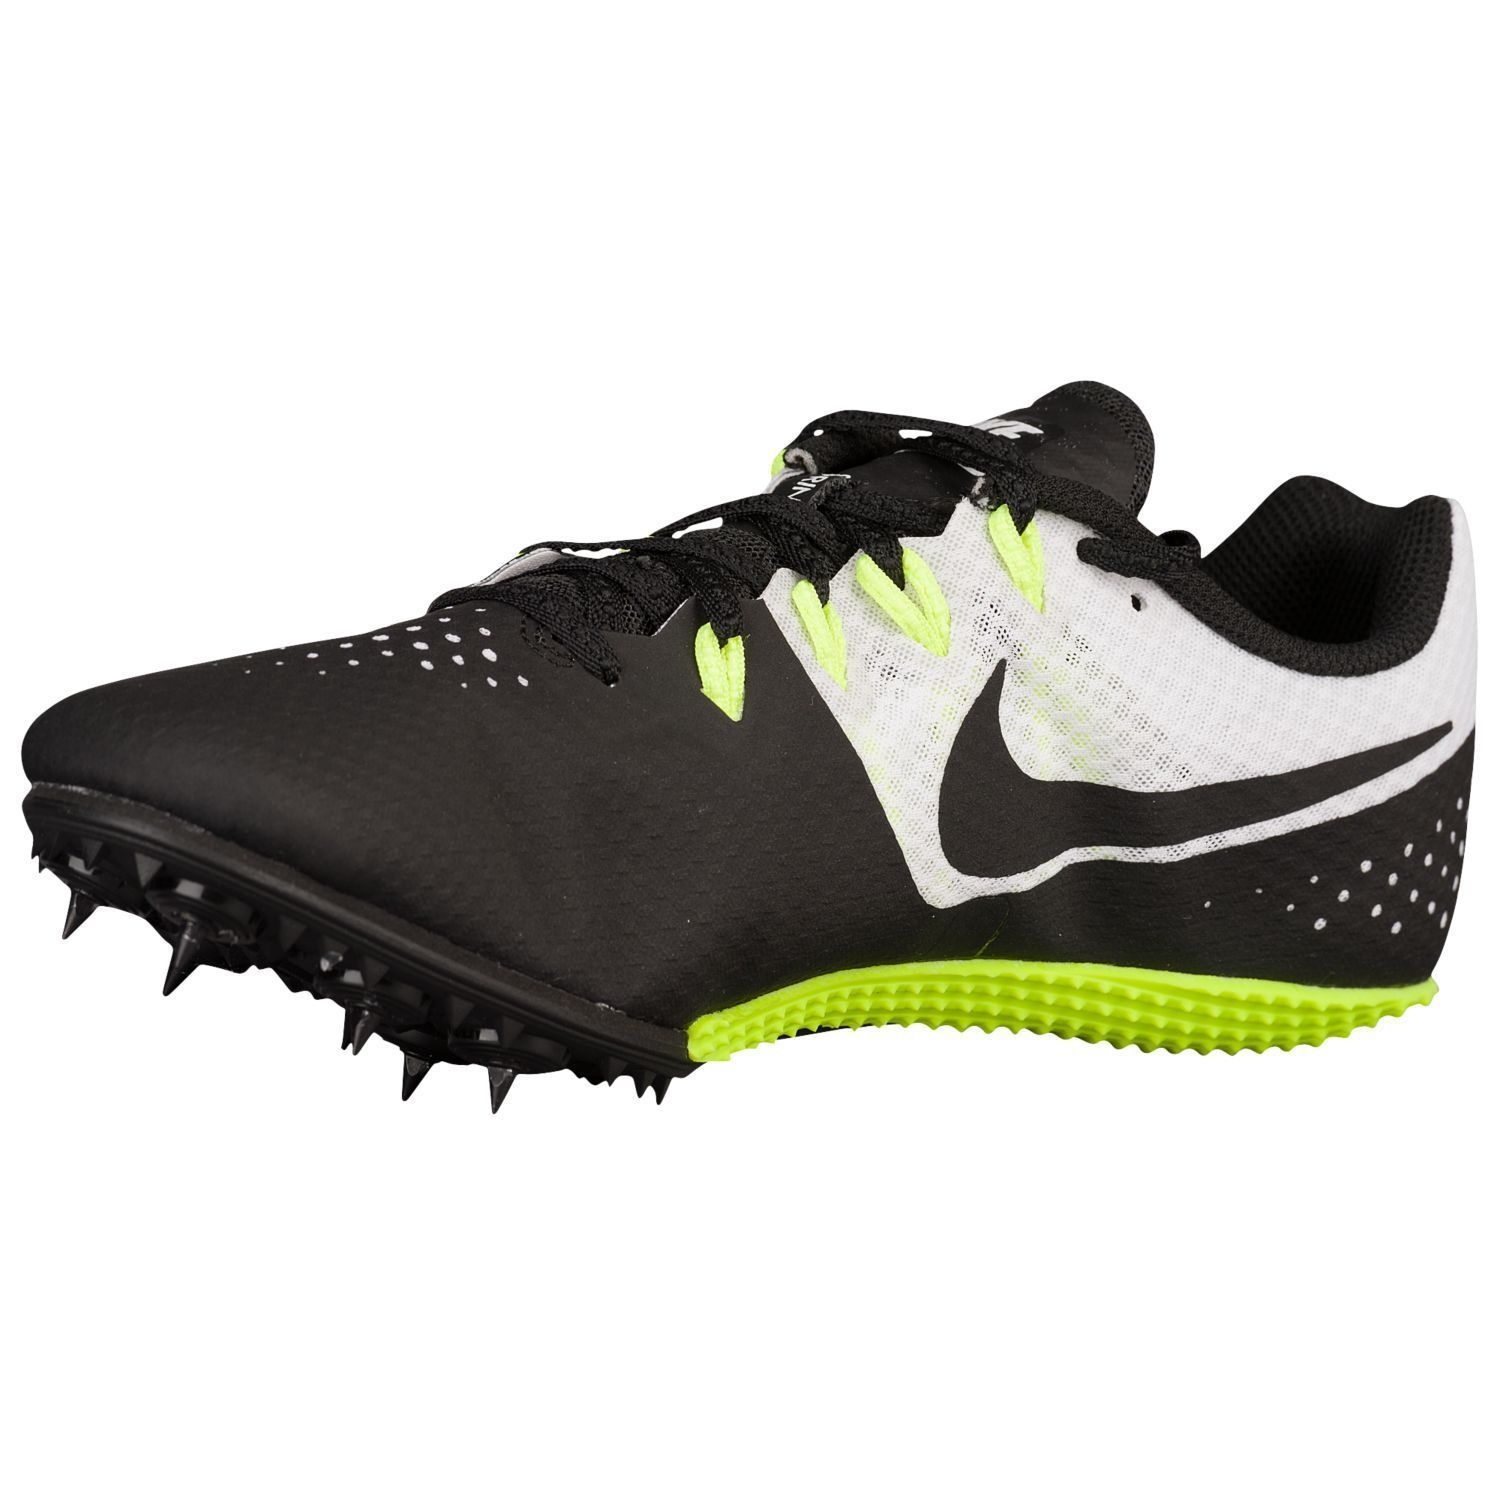 NEW NIKE ZOOM RIVAL S8 TRACK & FIELD CLEATS Mens 13 Nikeracing Shoes W/ Tool NWT - $44.40